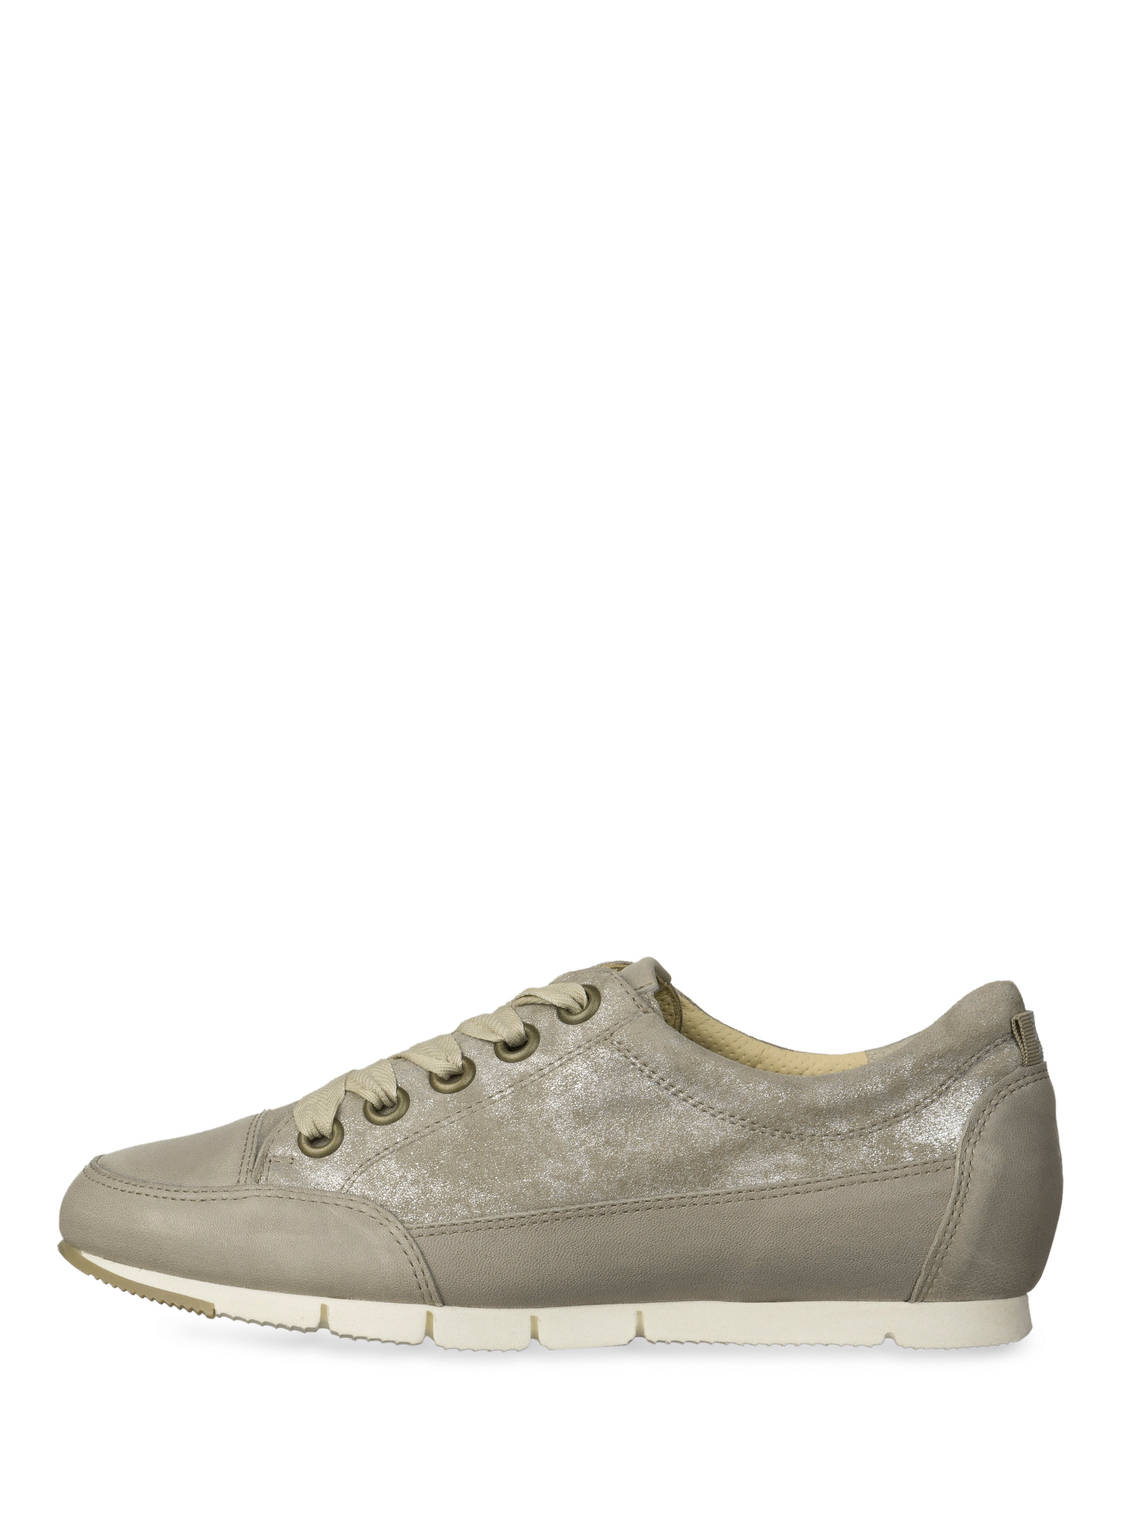 paul green Sneaker beige